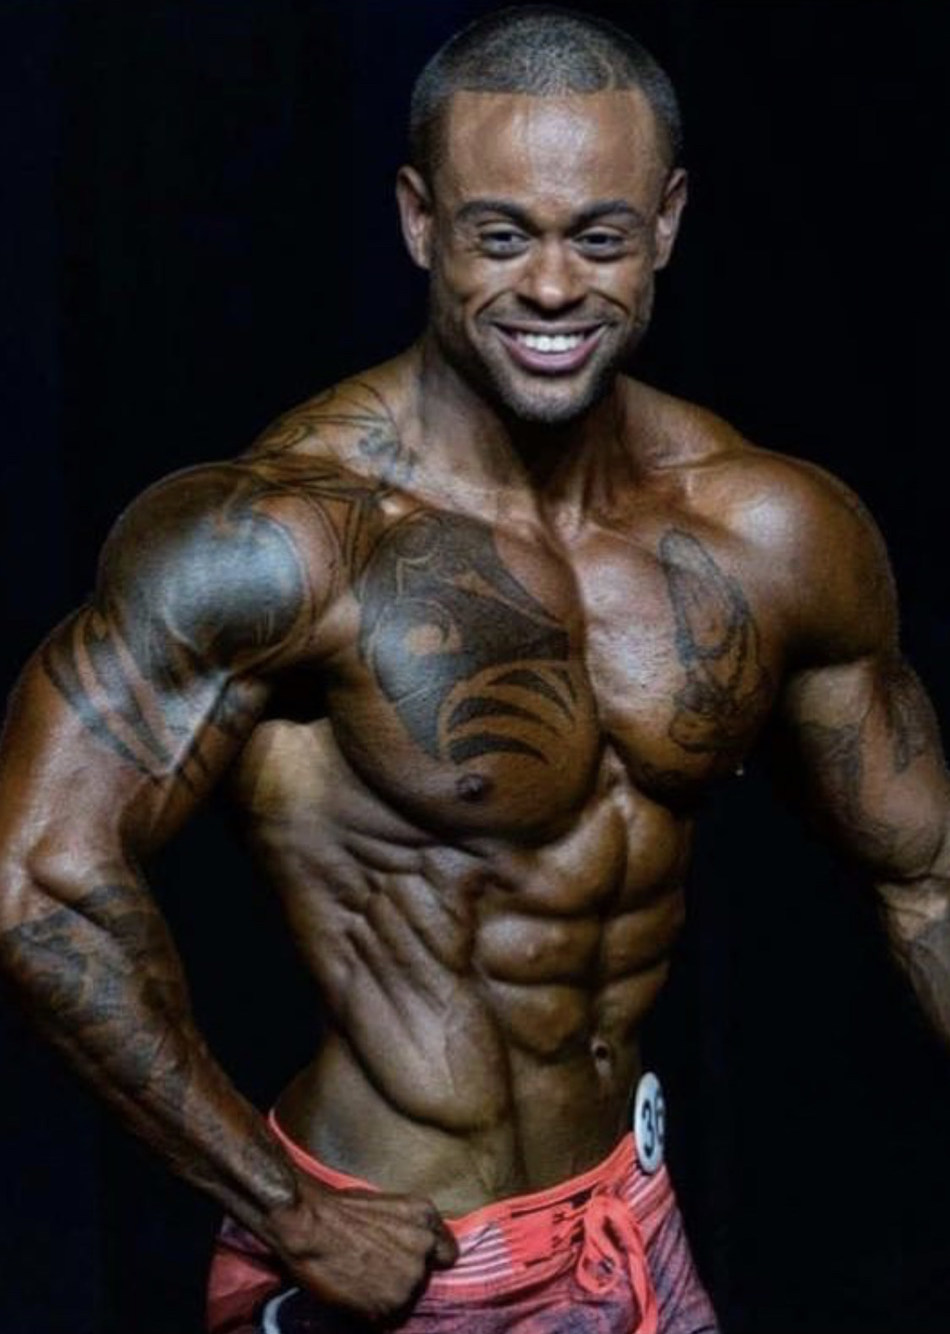 Mon Ethos Pro Athlete Kai Spencer